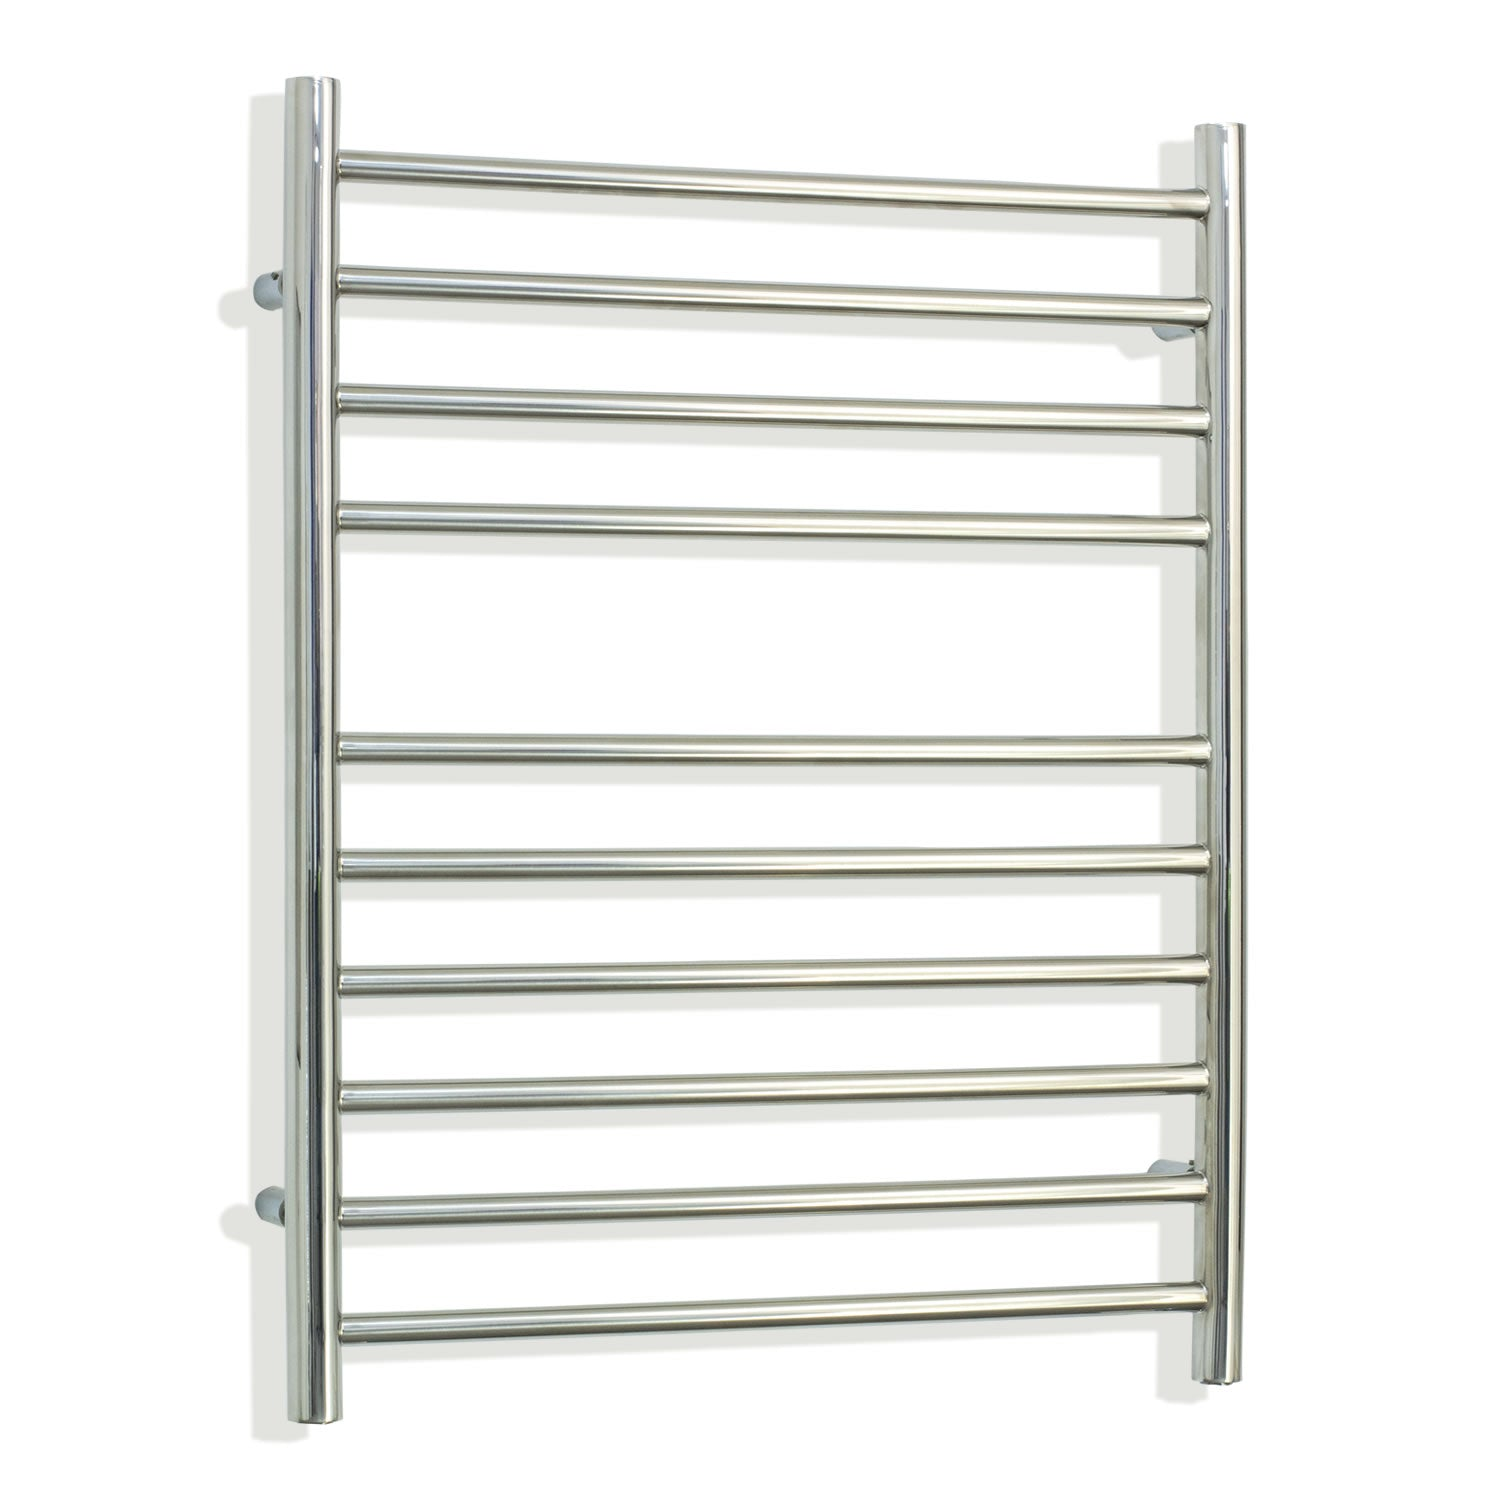 750 x 500 stainless steel towel rail radiator central heating